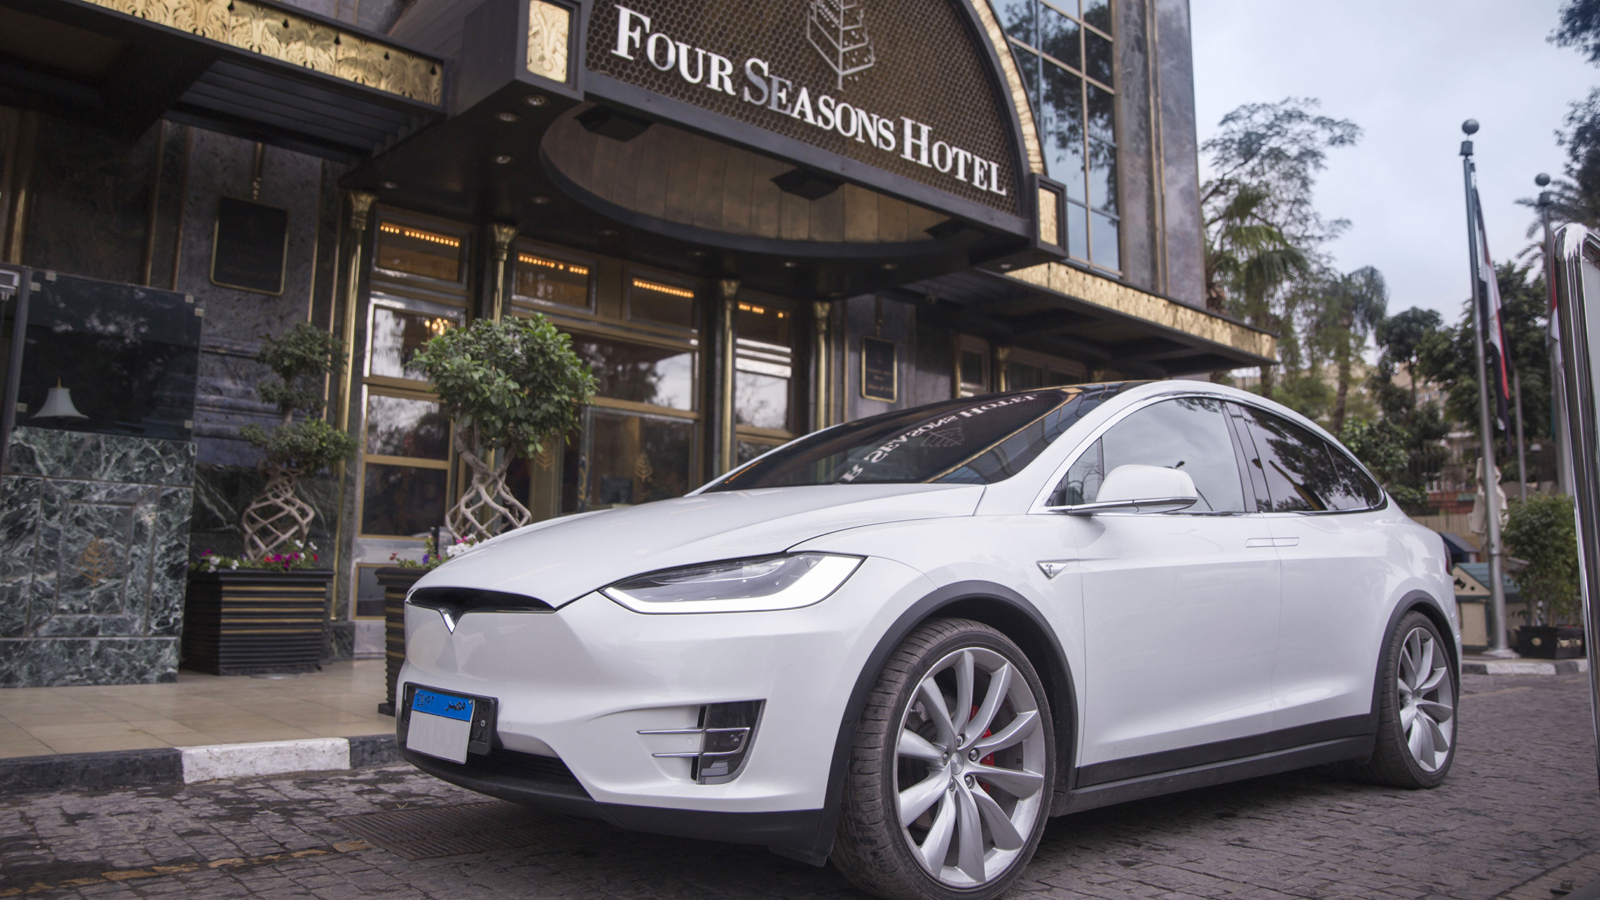 Four Seasons Cairo First Residence first electric car charging station